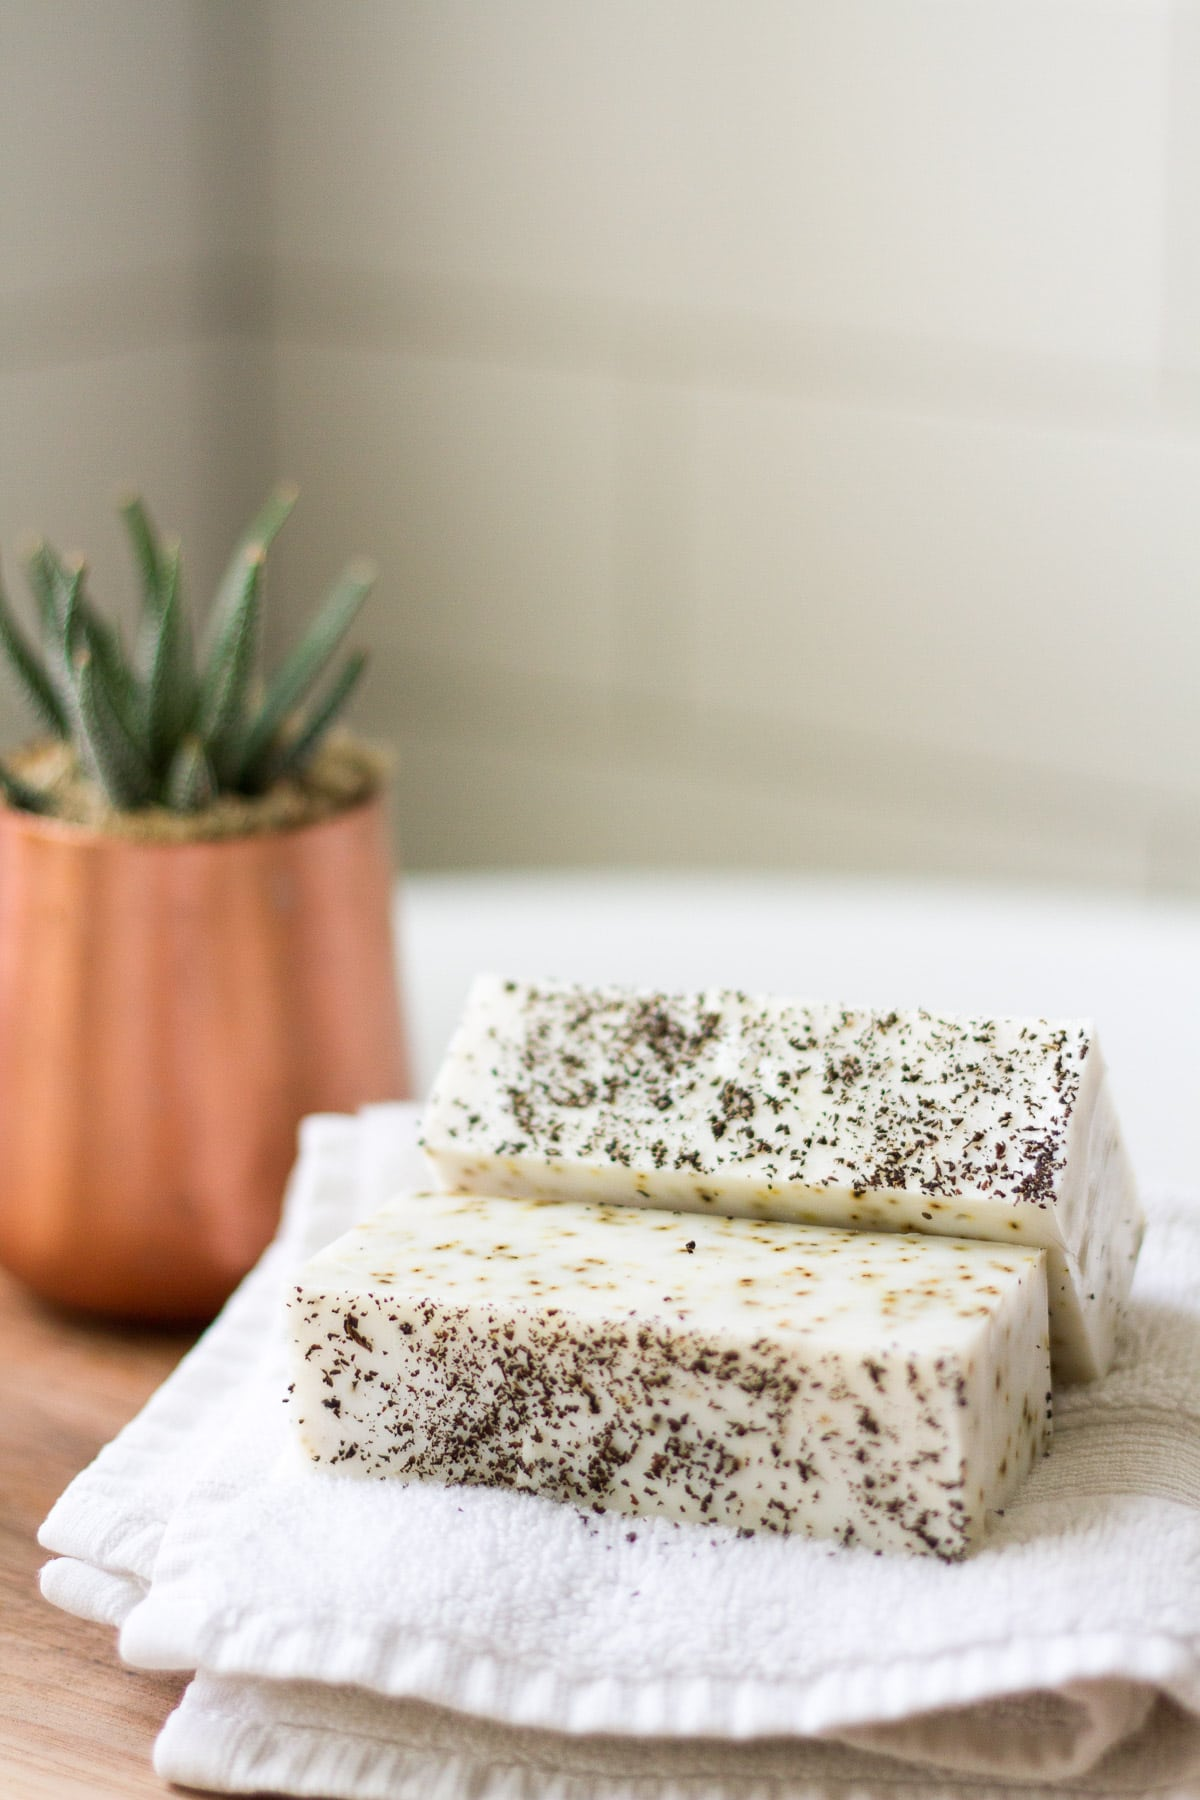 These homemade soaps are great for gifts or to keep for your own Fall pampering. Make these for your next home spa day!